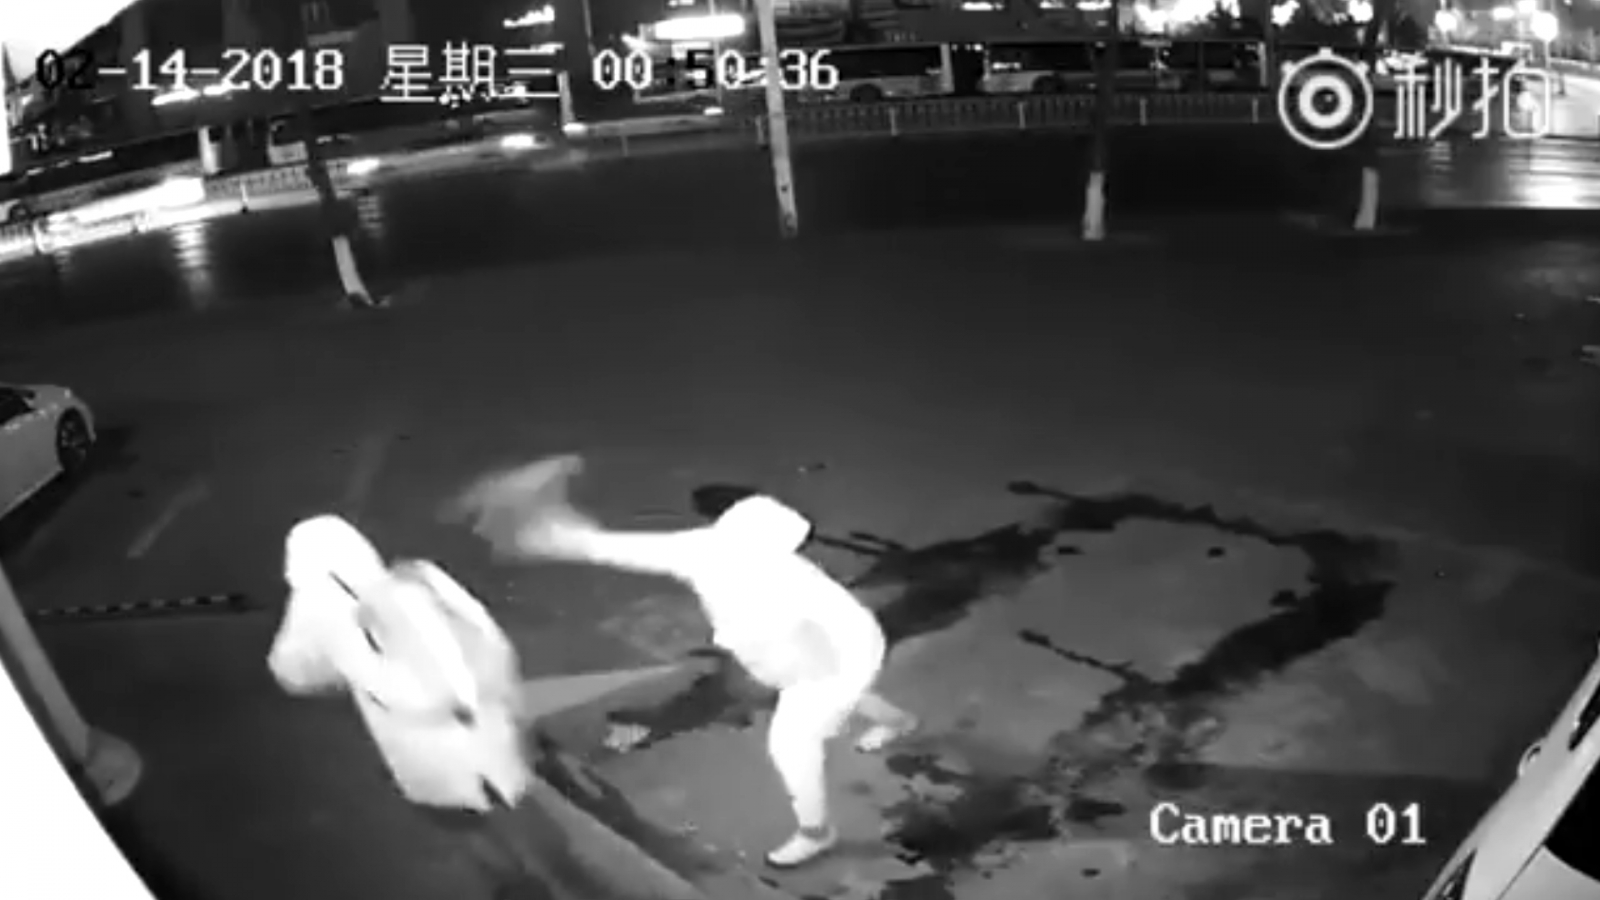 bungling-would-be-shanghai-burglar-hits-partner-in-head-with-brick